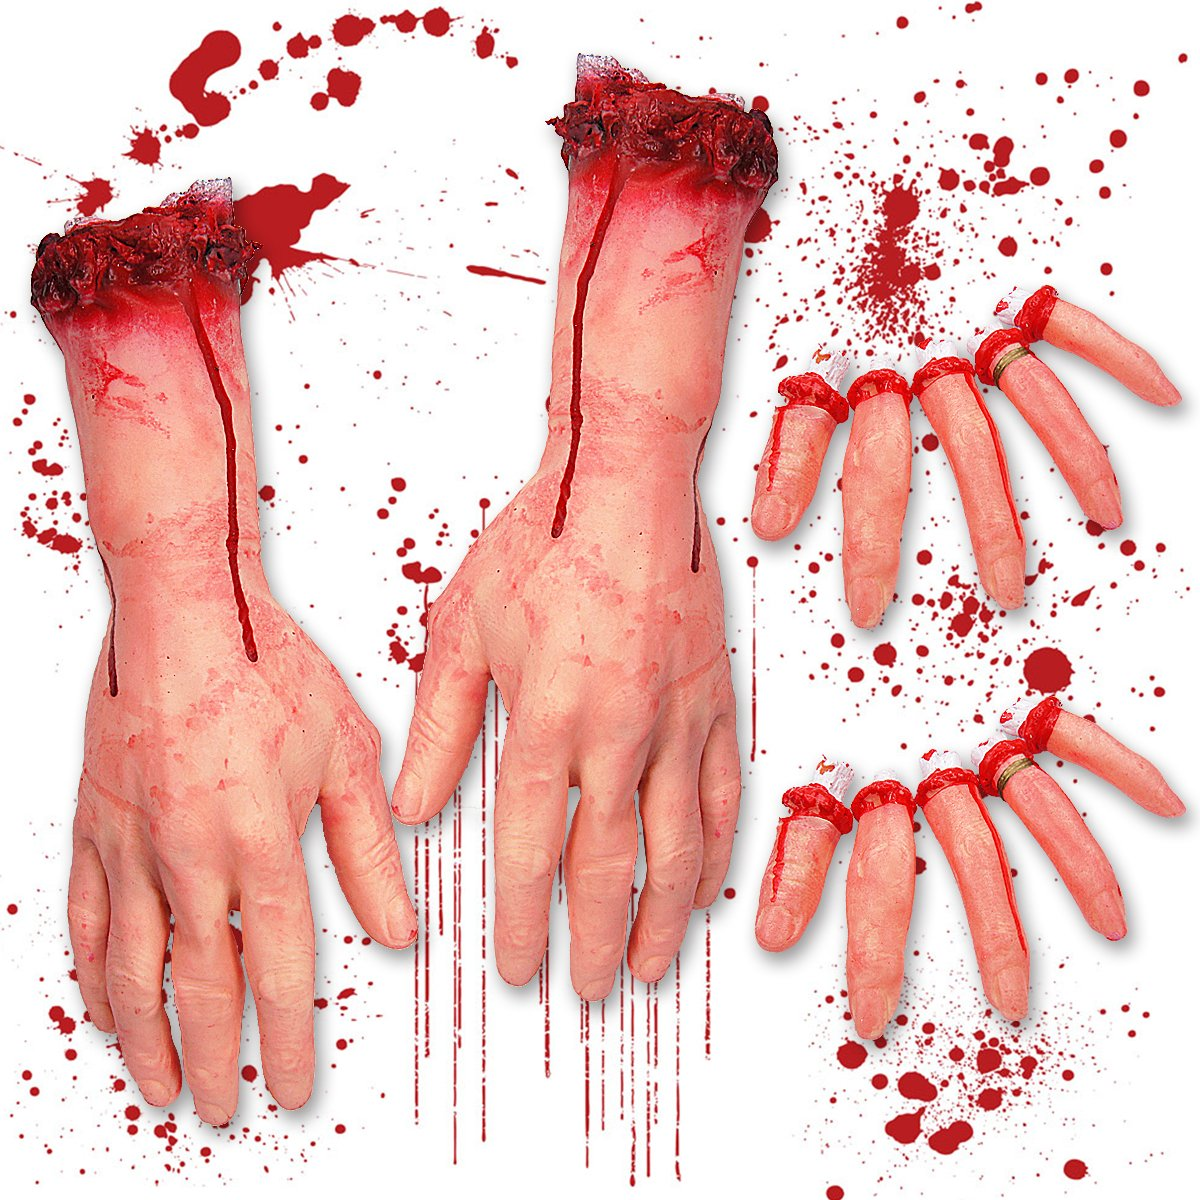 Pawliss Halloween Body Parts, Severed Fake Arms Hands Fingers, Horror Bloody Props, Haunted House Decorations by Pawliss